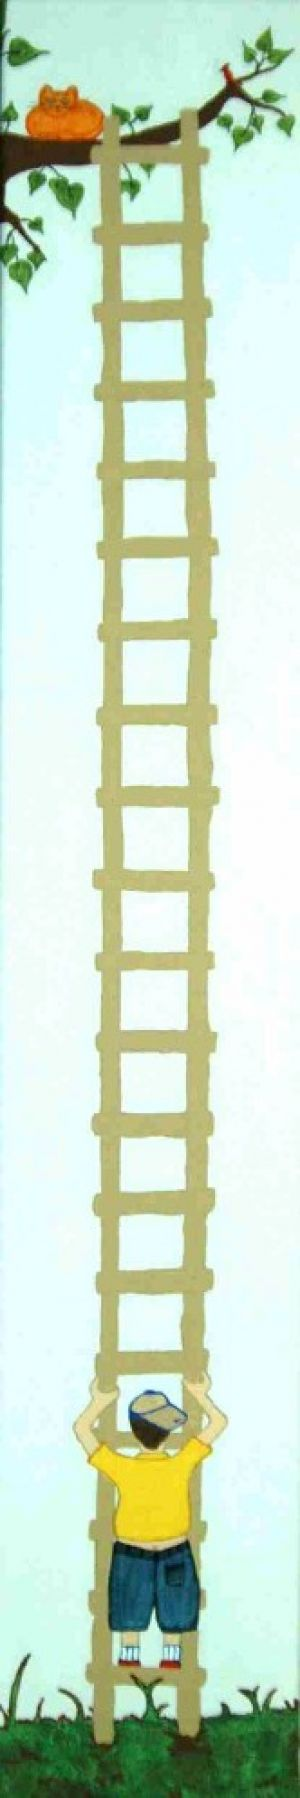 Boy and ladder MAP.jpg